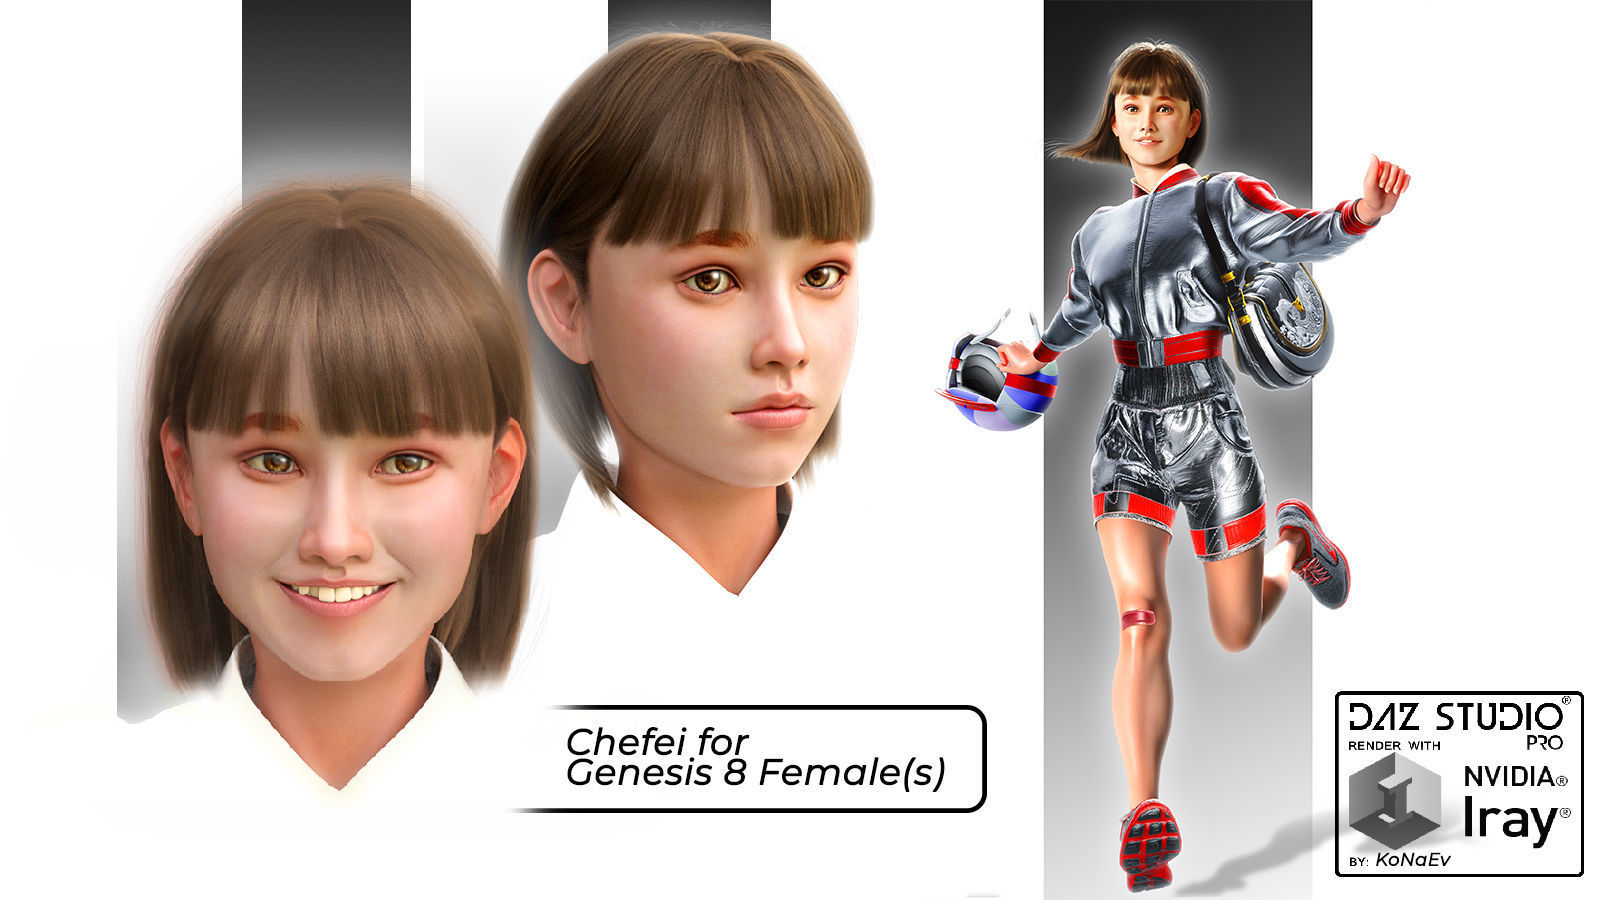 Chefei for Genesis 8 Females